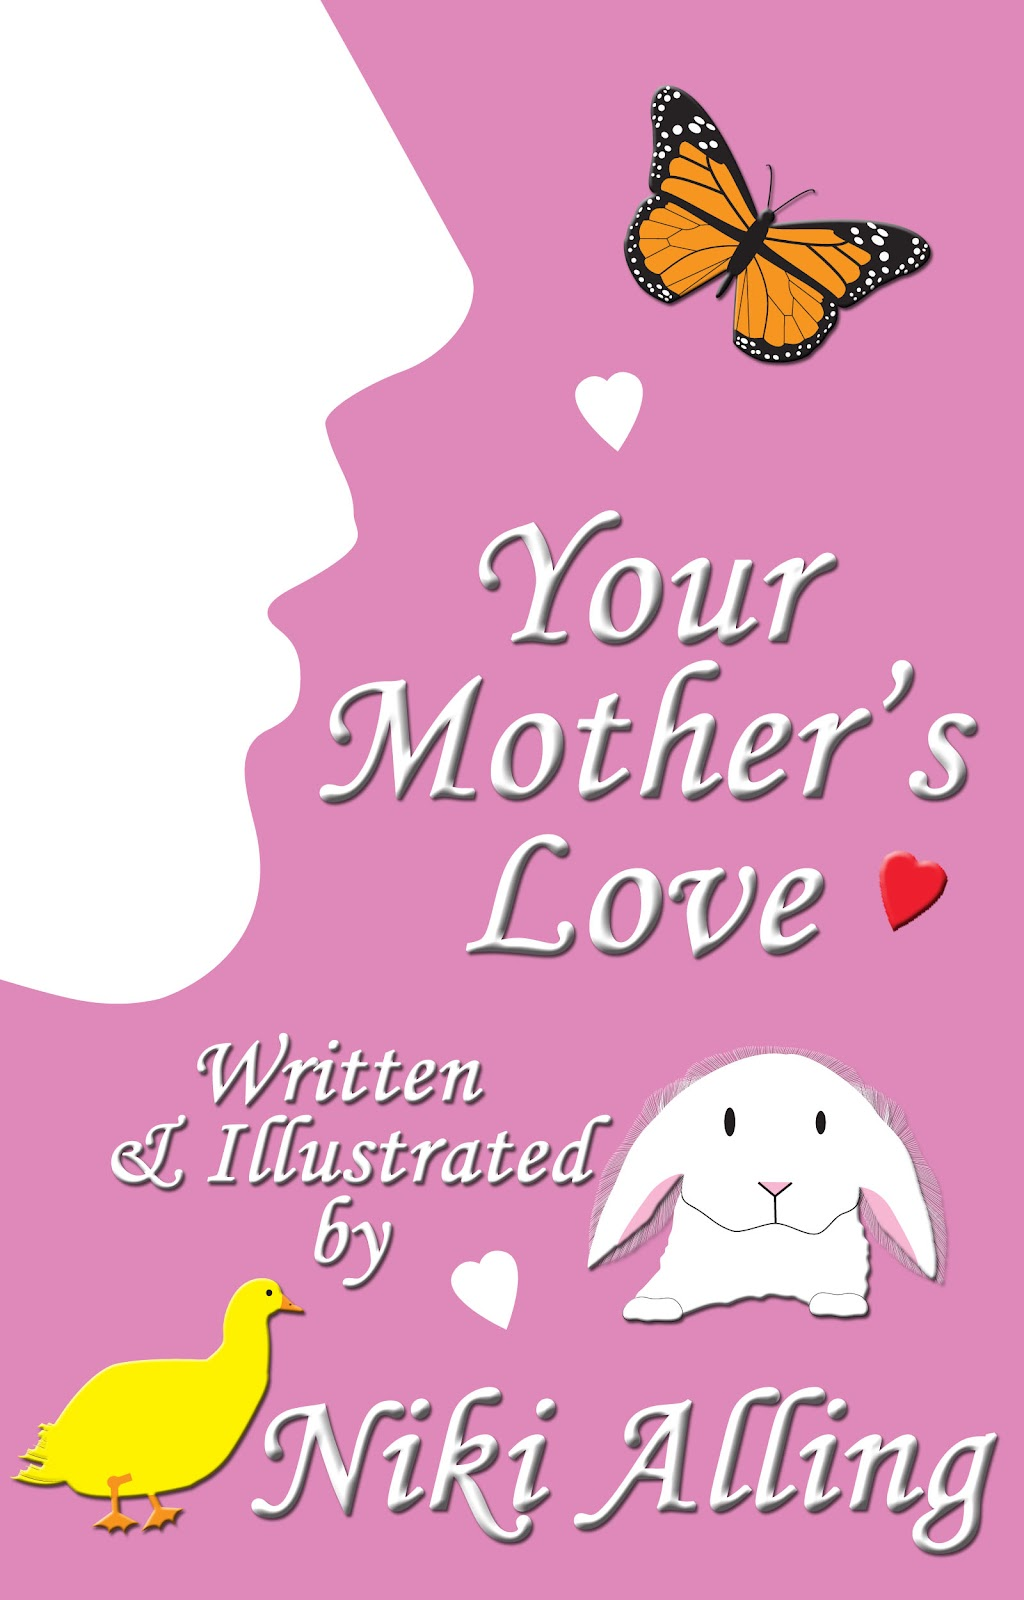 http://www.amazon.com/Your-Mothers-Love-Parents-ebook/dp/B007XL0E0U/ref=tmm_kin_swatch_0?_encoding=UTF8&sr=1-7&qid=1430449759